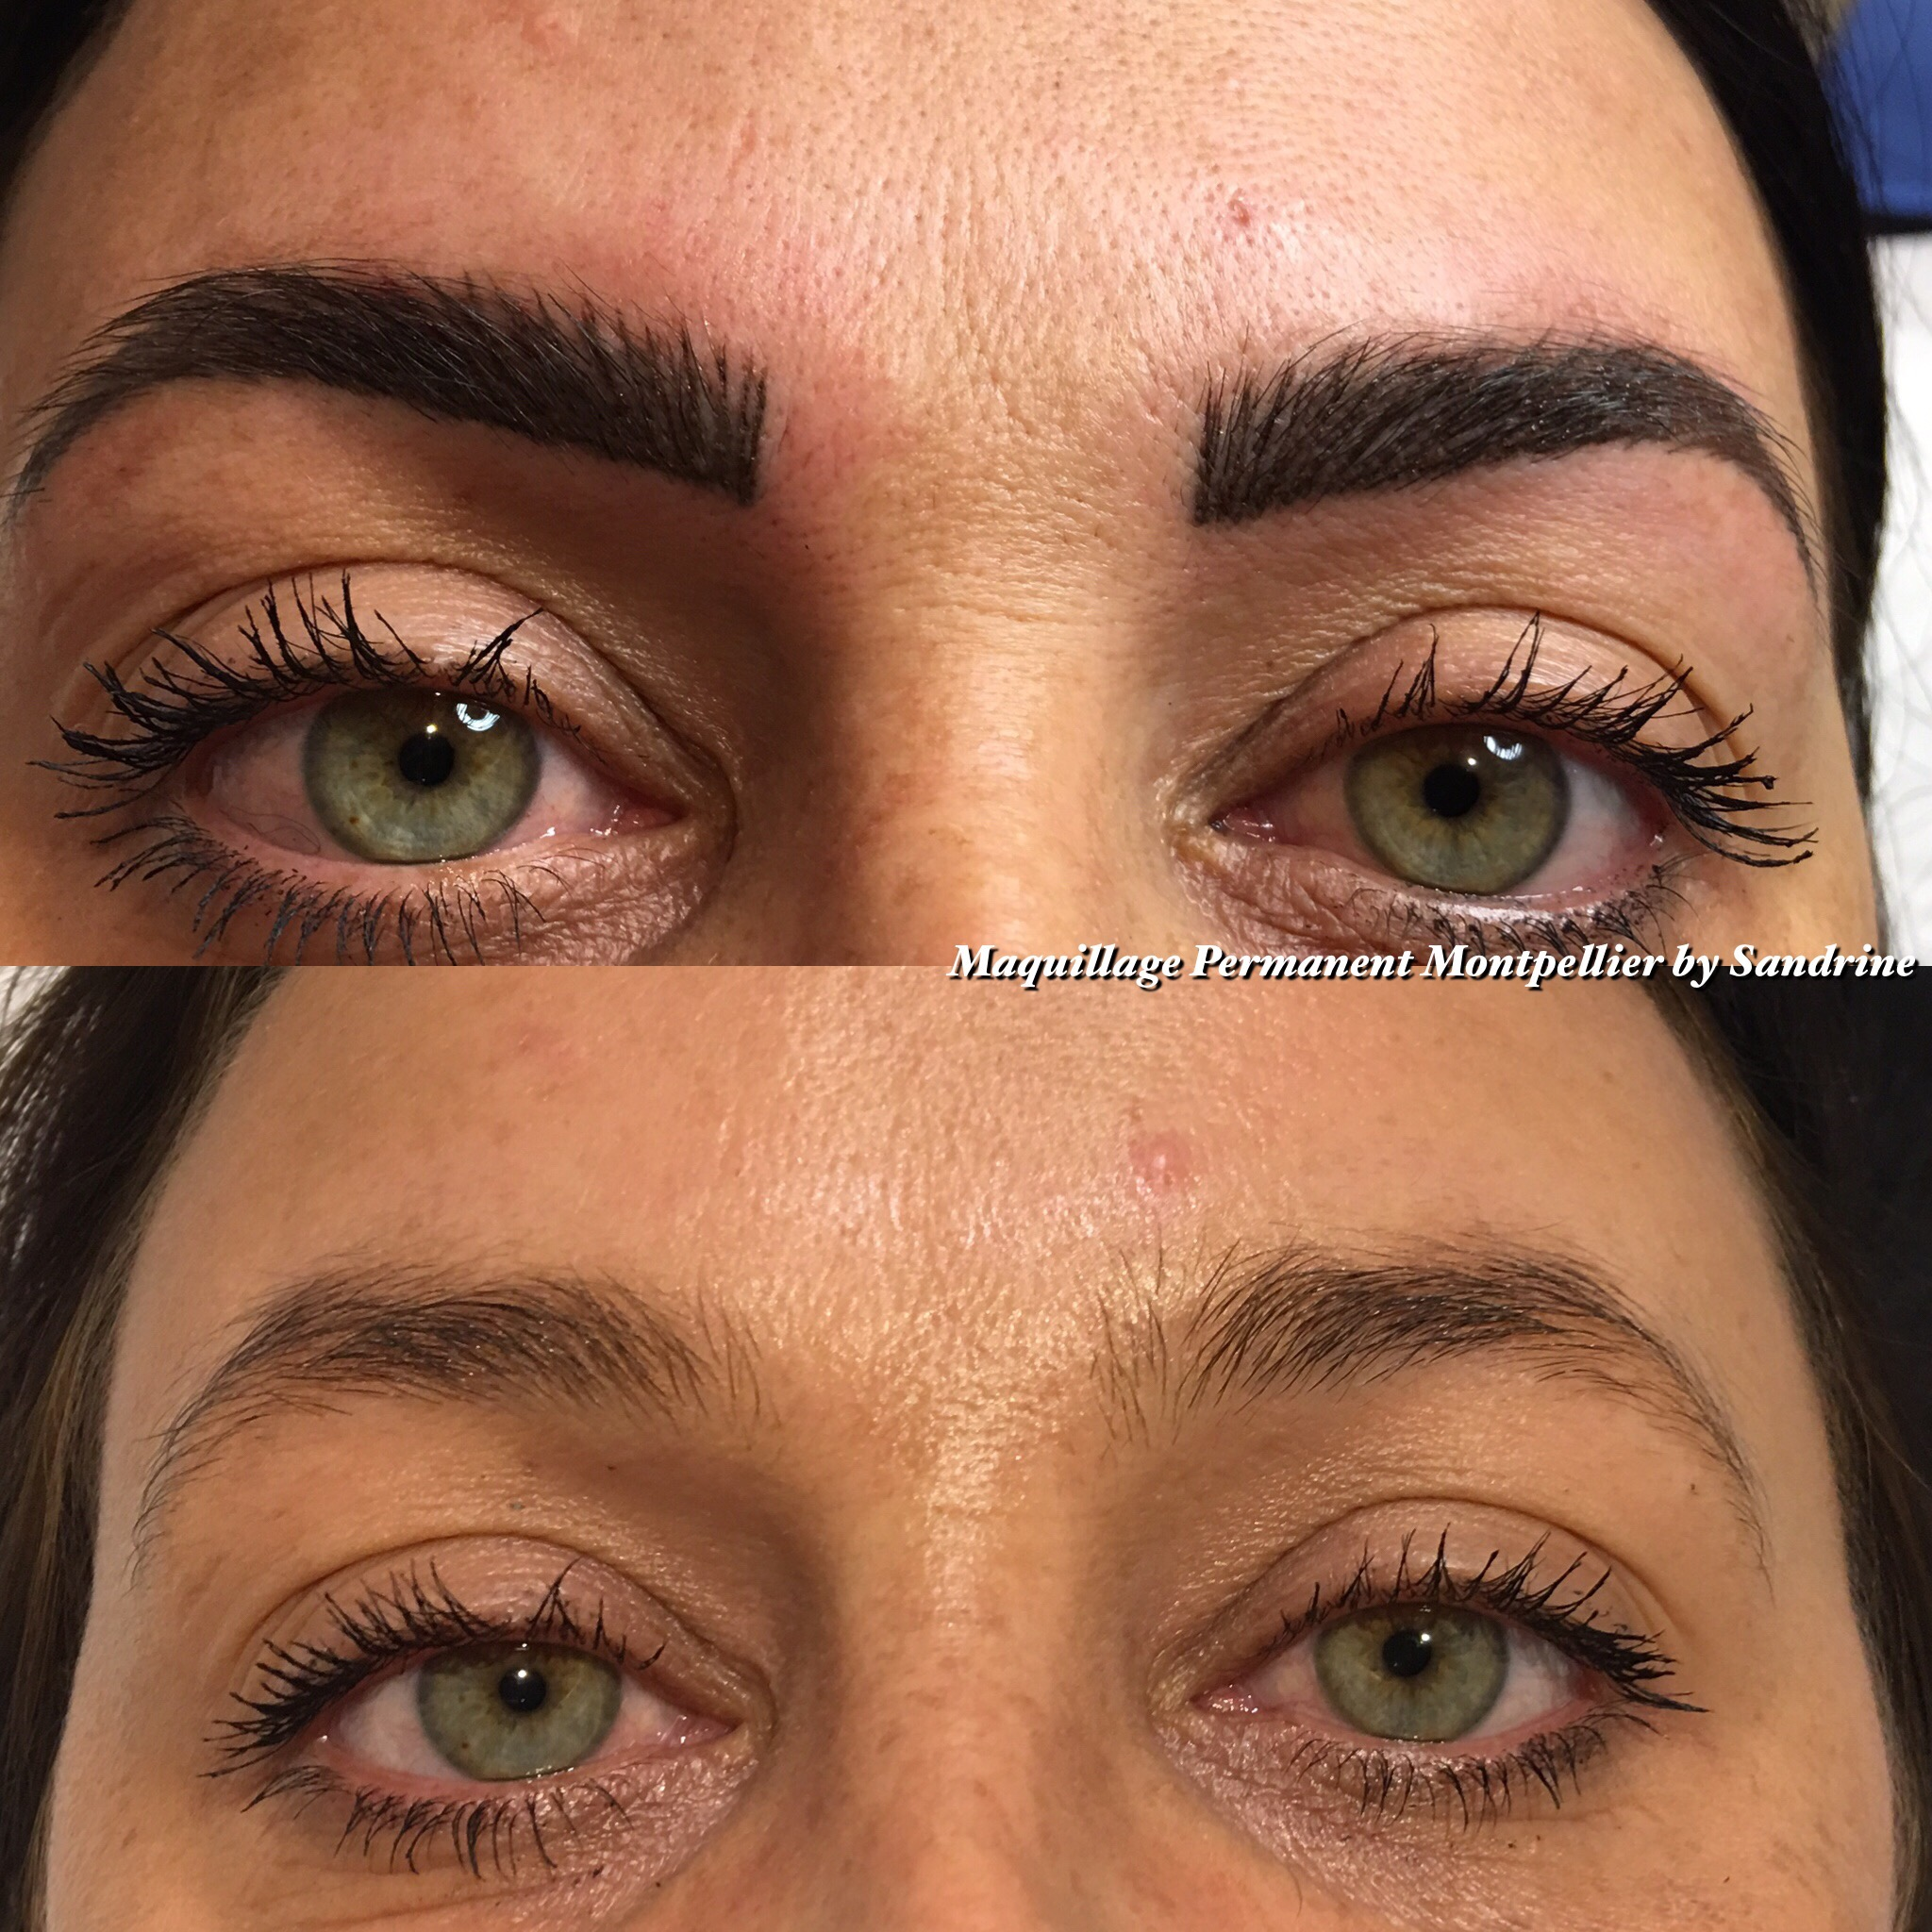 Fabuleux de beauté à Montpellier - Maquillage Permanent Sourcils QJ43